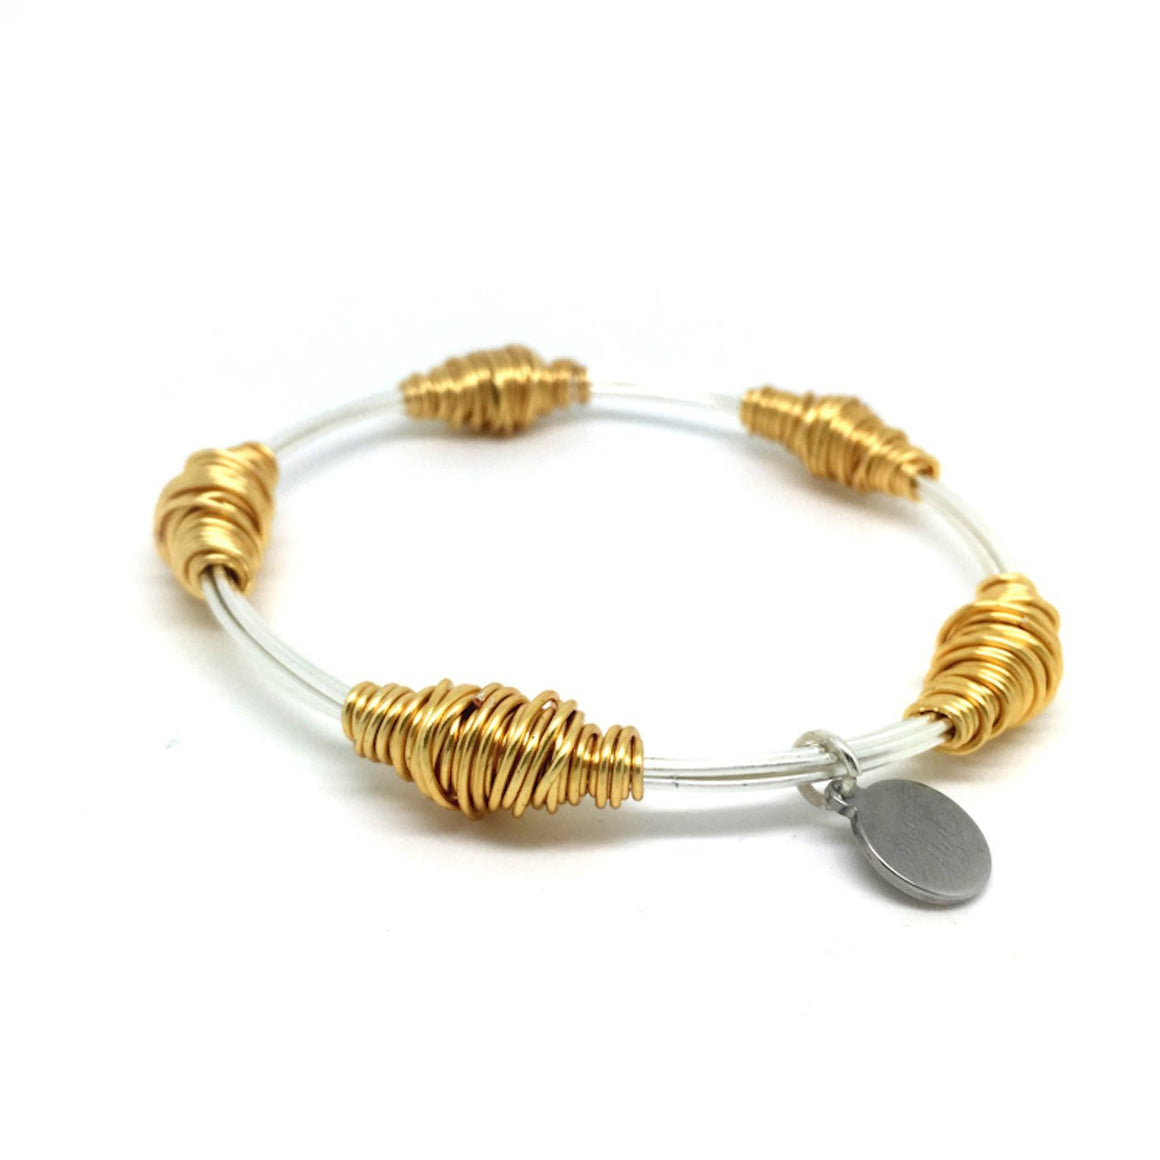 BAS Junie Bangle Silver & Gold - WAS £35 - Villancher Gifts &  Fashion Accessories